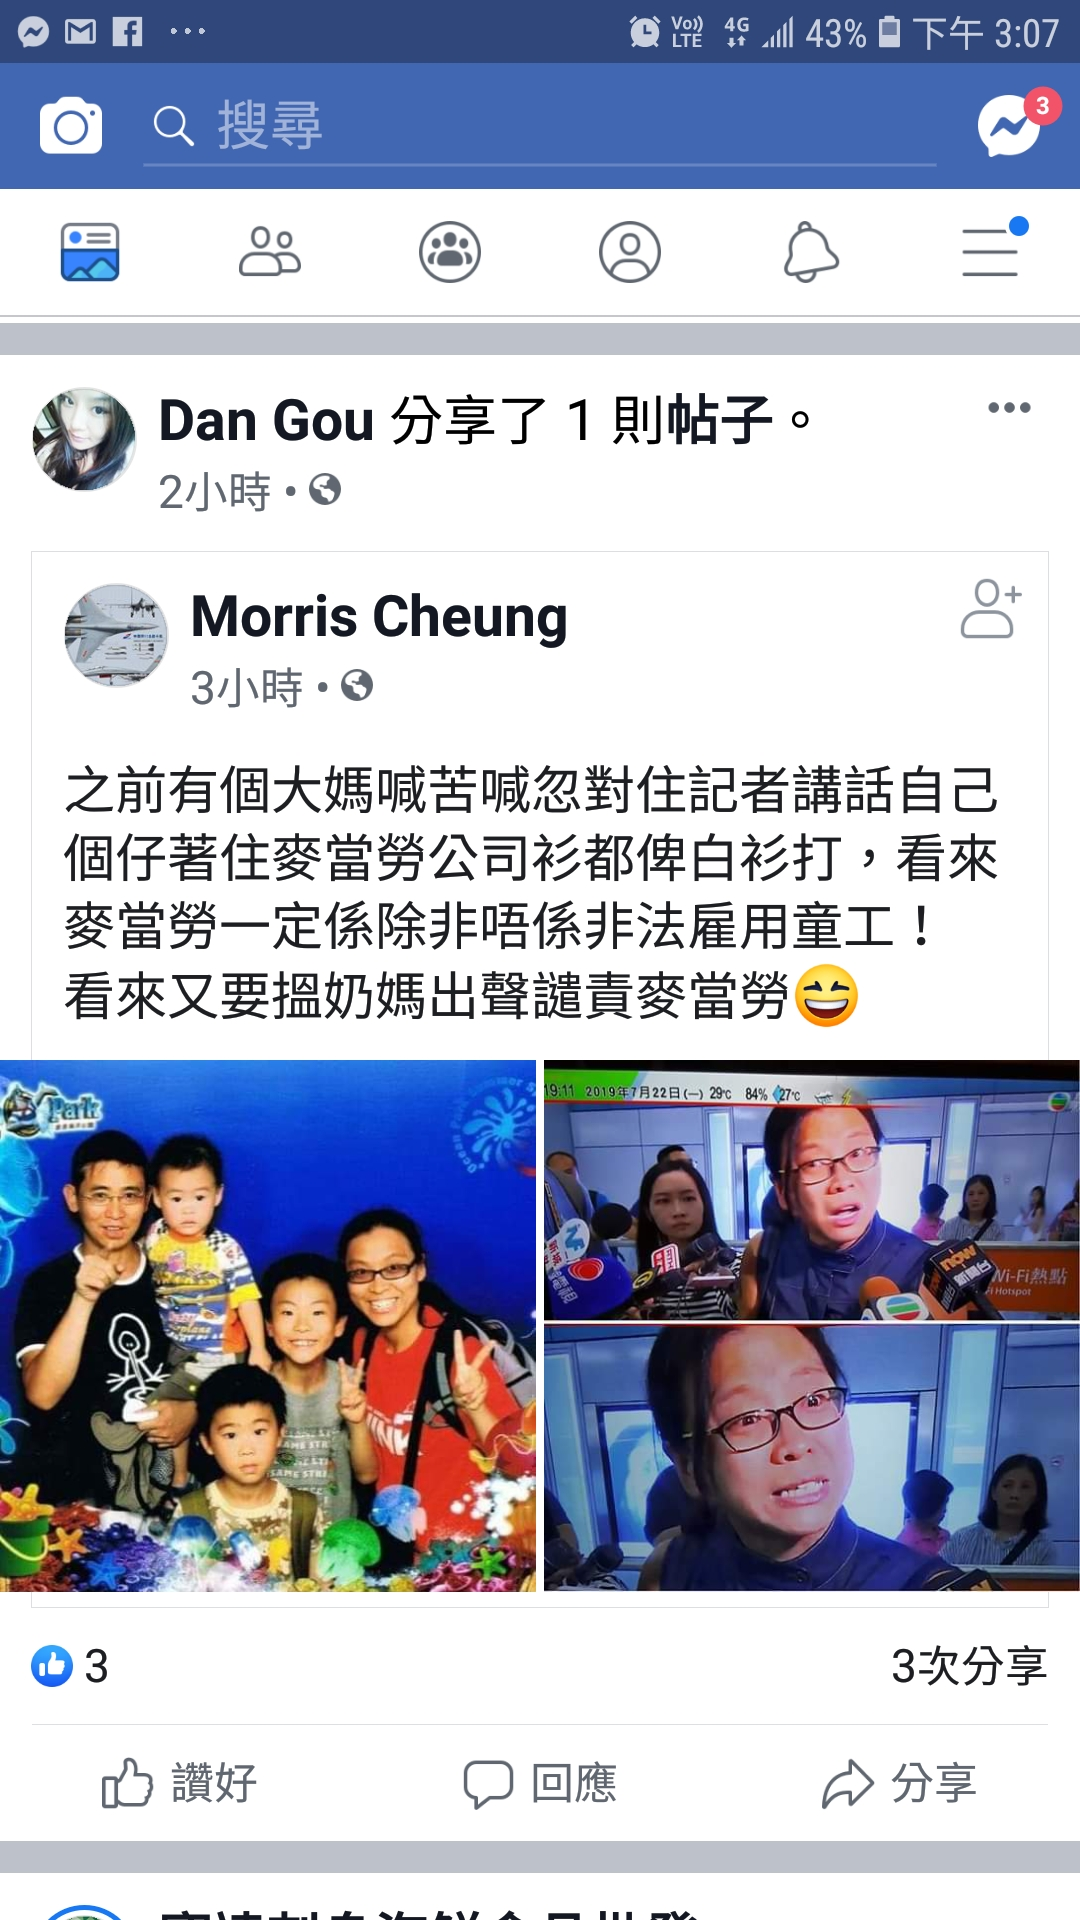 Screenshot_20190723-150744_Facebook.jpg